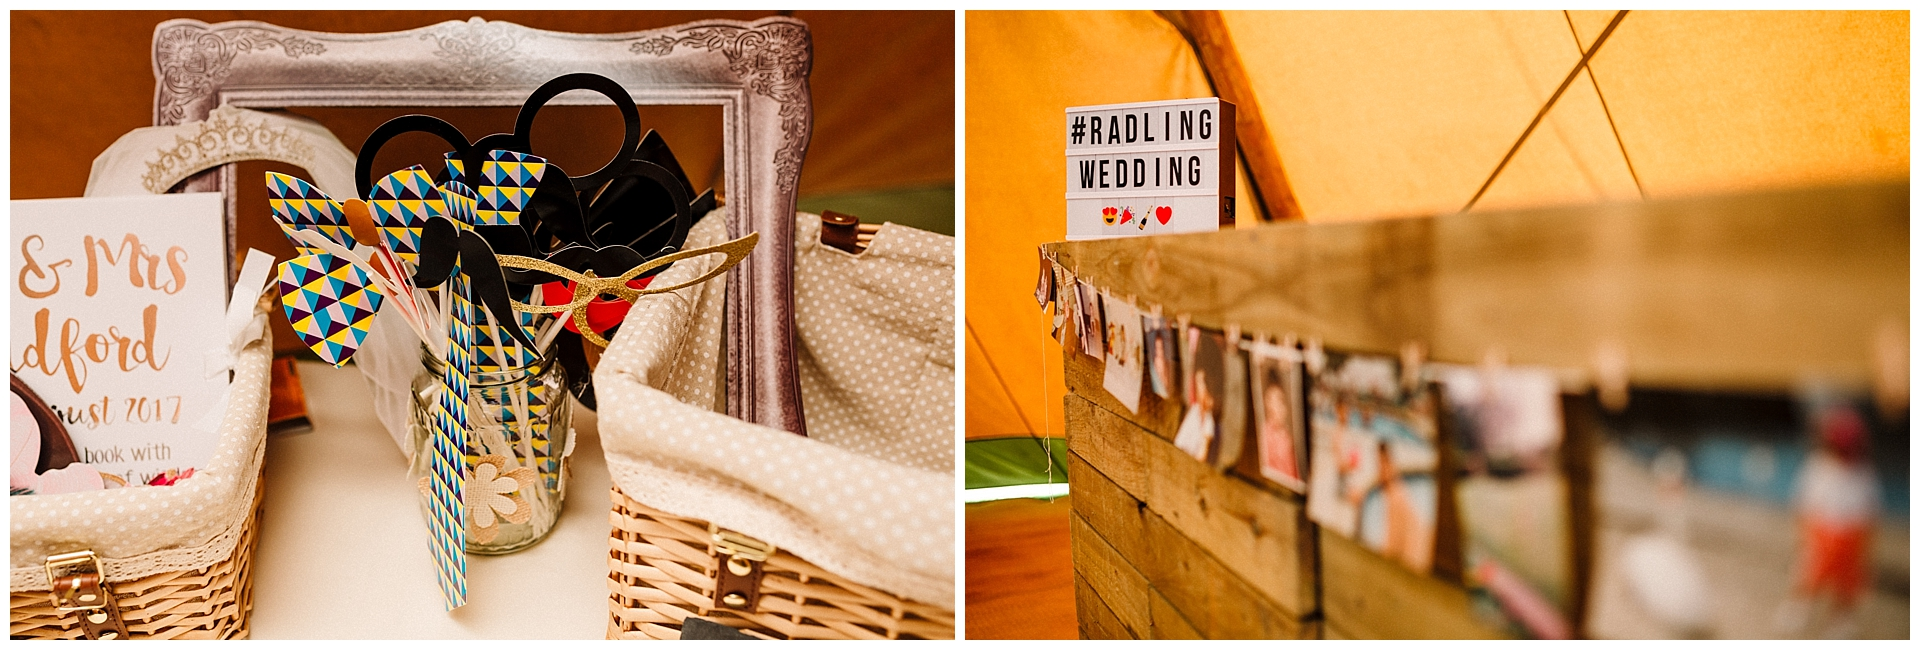 Photobooth props and tipi decorations